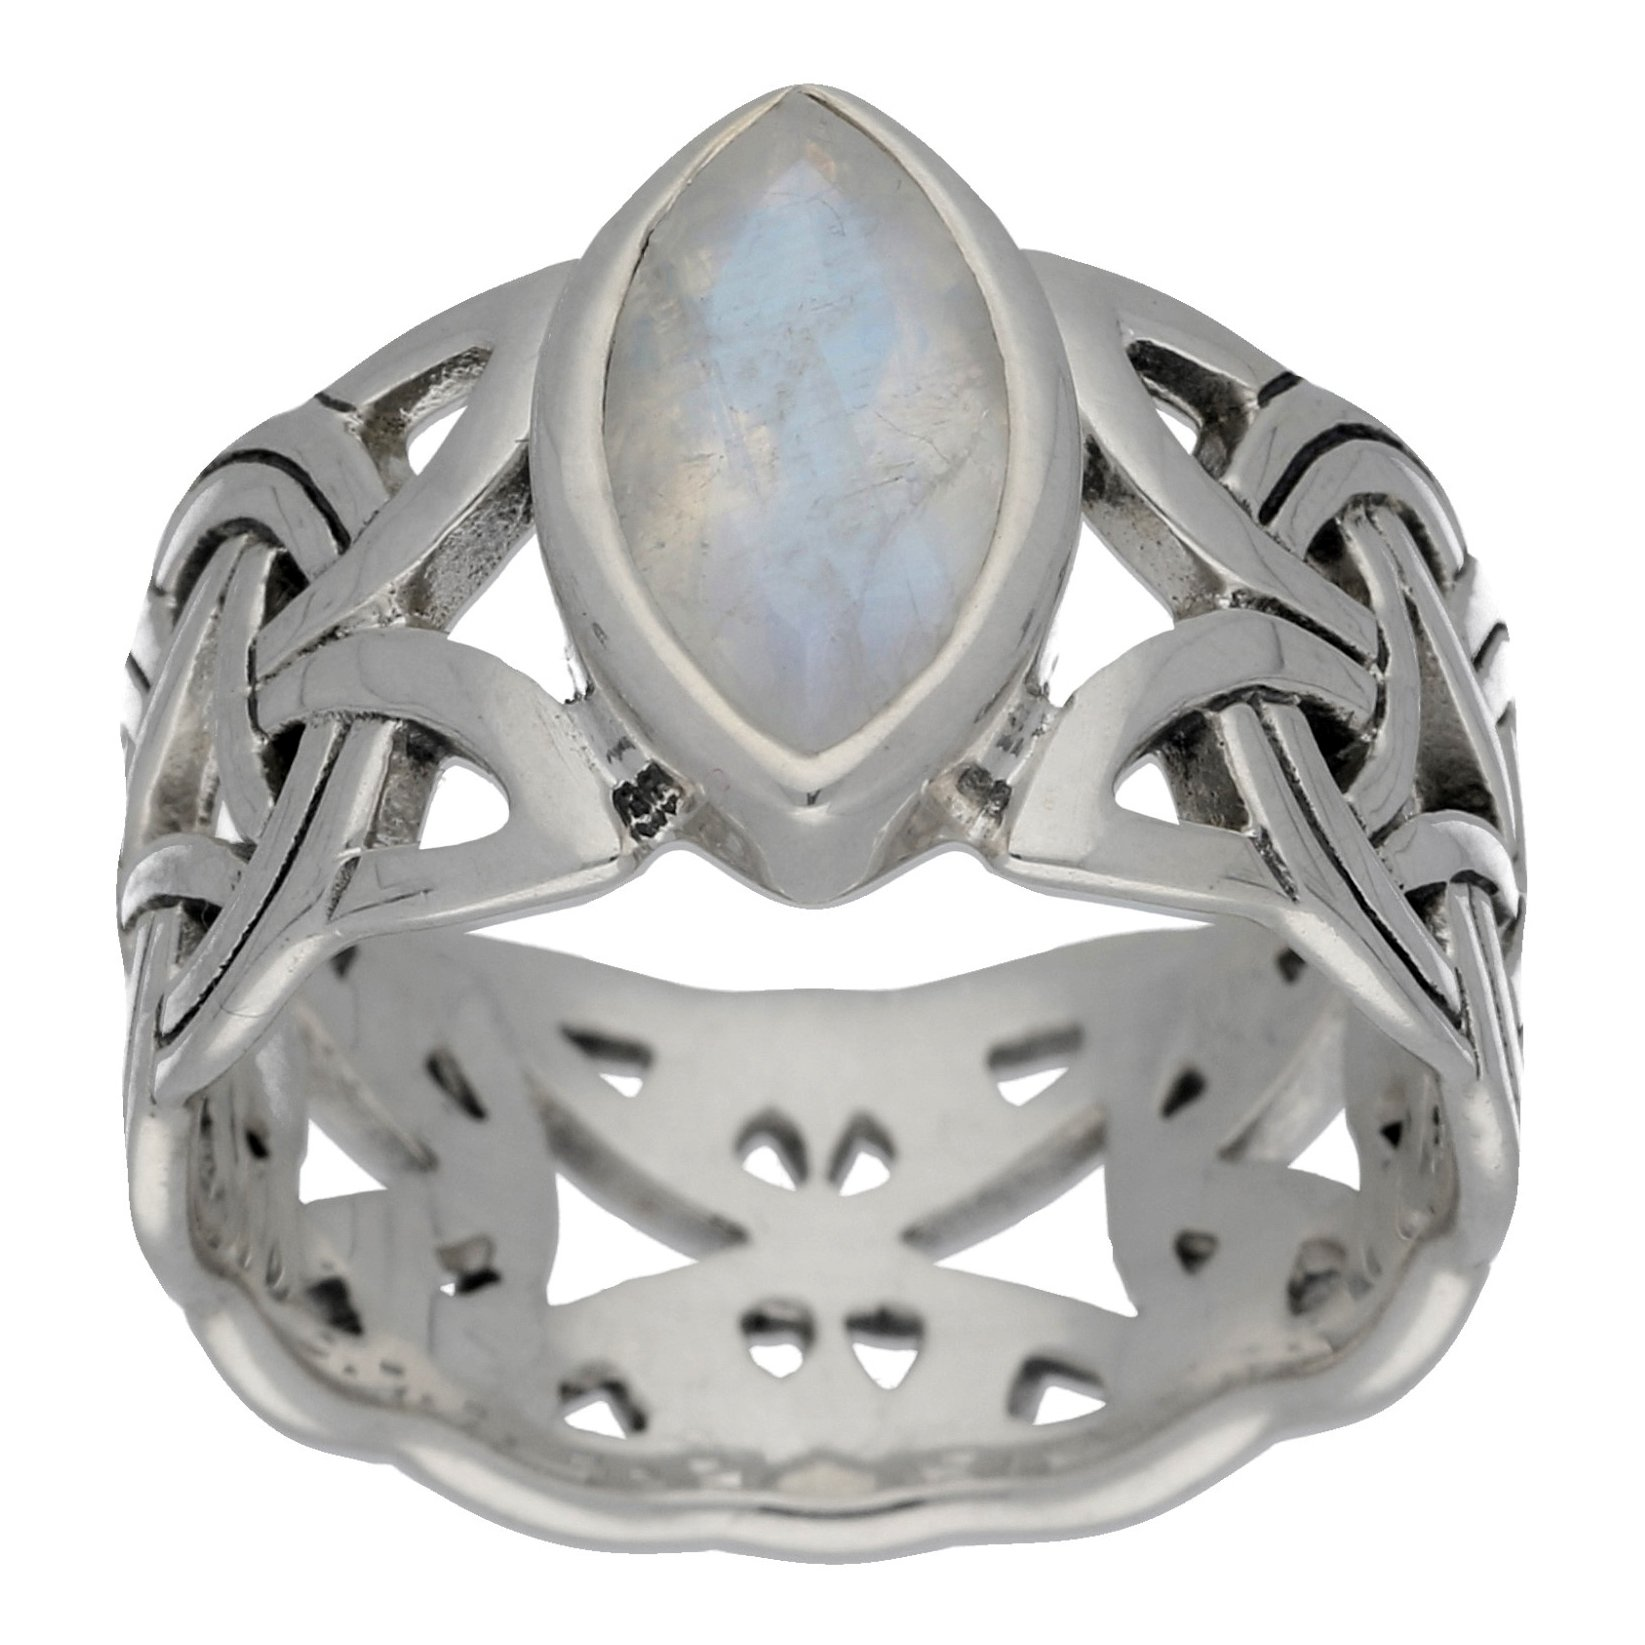 Borre Knot Rainbow Moonstone Ellipse Viking Braided Wedding Band Norse Celtic Sterling Silver Ring Size 8(Sizes 4,5,6,7,8,9,10,11,12,13,14,15)